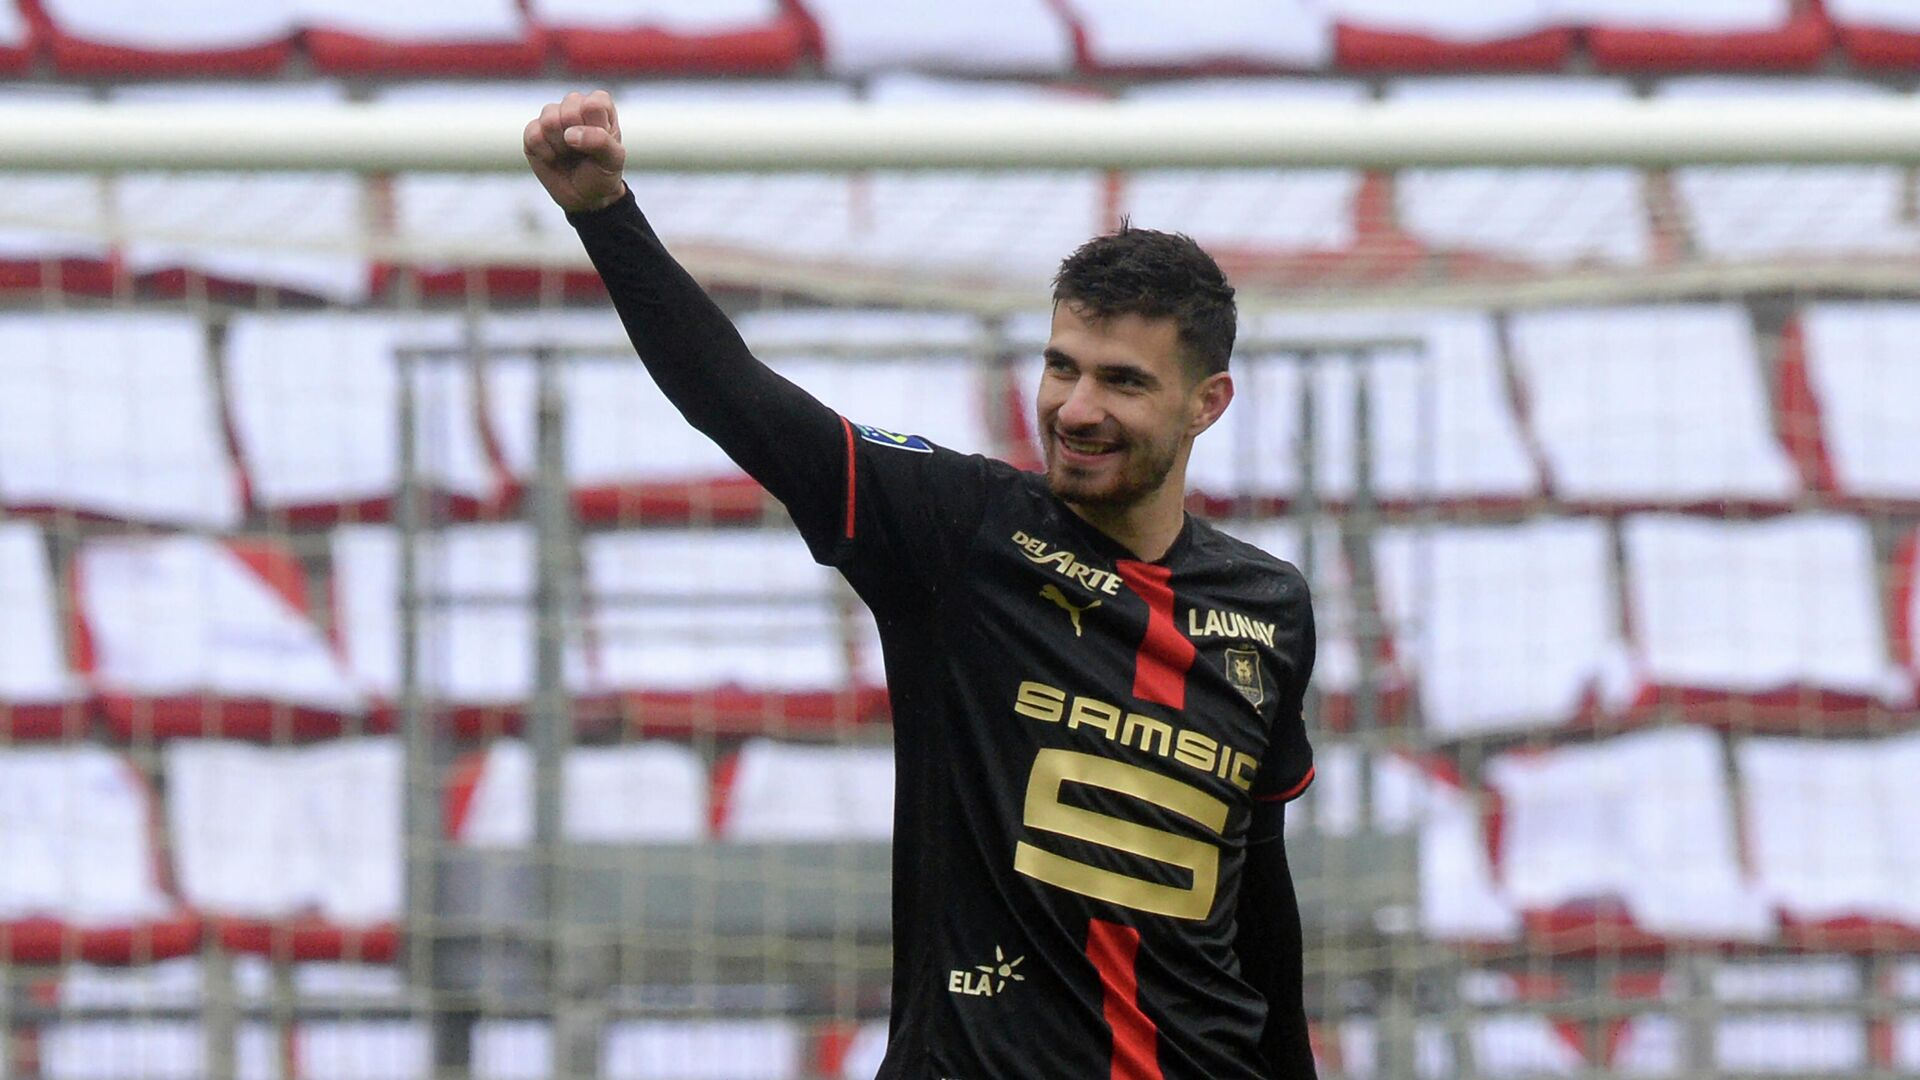 Rennes' French forward Martin Terrier reacts after scoring during the French L1 football match between Stade Rennais (Rennes) and FC Nantes at The Roazhon Park Stadium in Rennes, north-western France on April 11, 2021. (Photo by JEAN-FRANCOIS MONIER / AFP) - РИА Новости, 1920, 11.04.2021